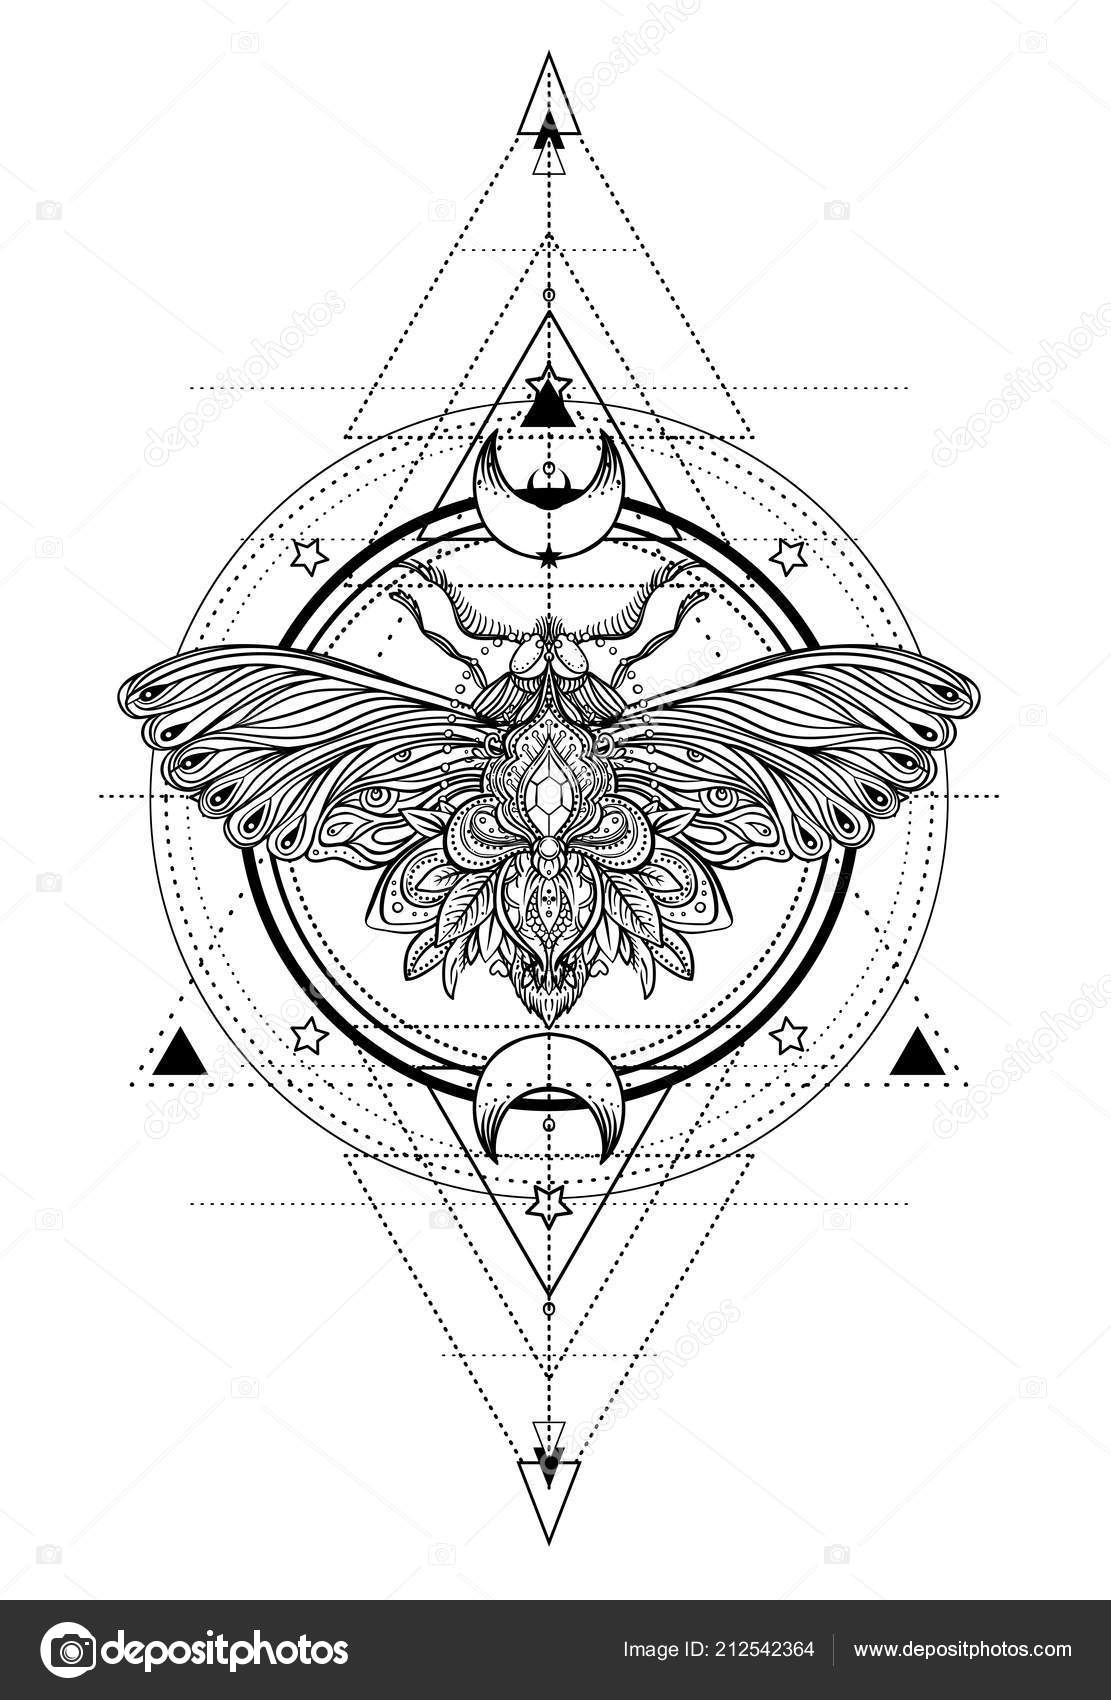 14916a8b9 Tattoo sketch. Mystical symbols and insects. Alchemy, occultism,  spirituality, coloring book. Hand-drawn vintage. — Vector by vgorbash